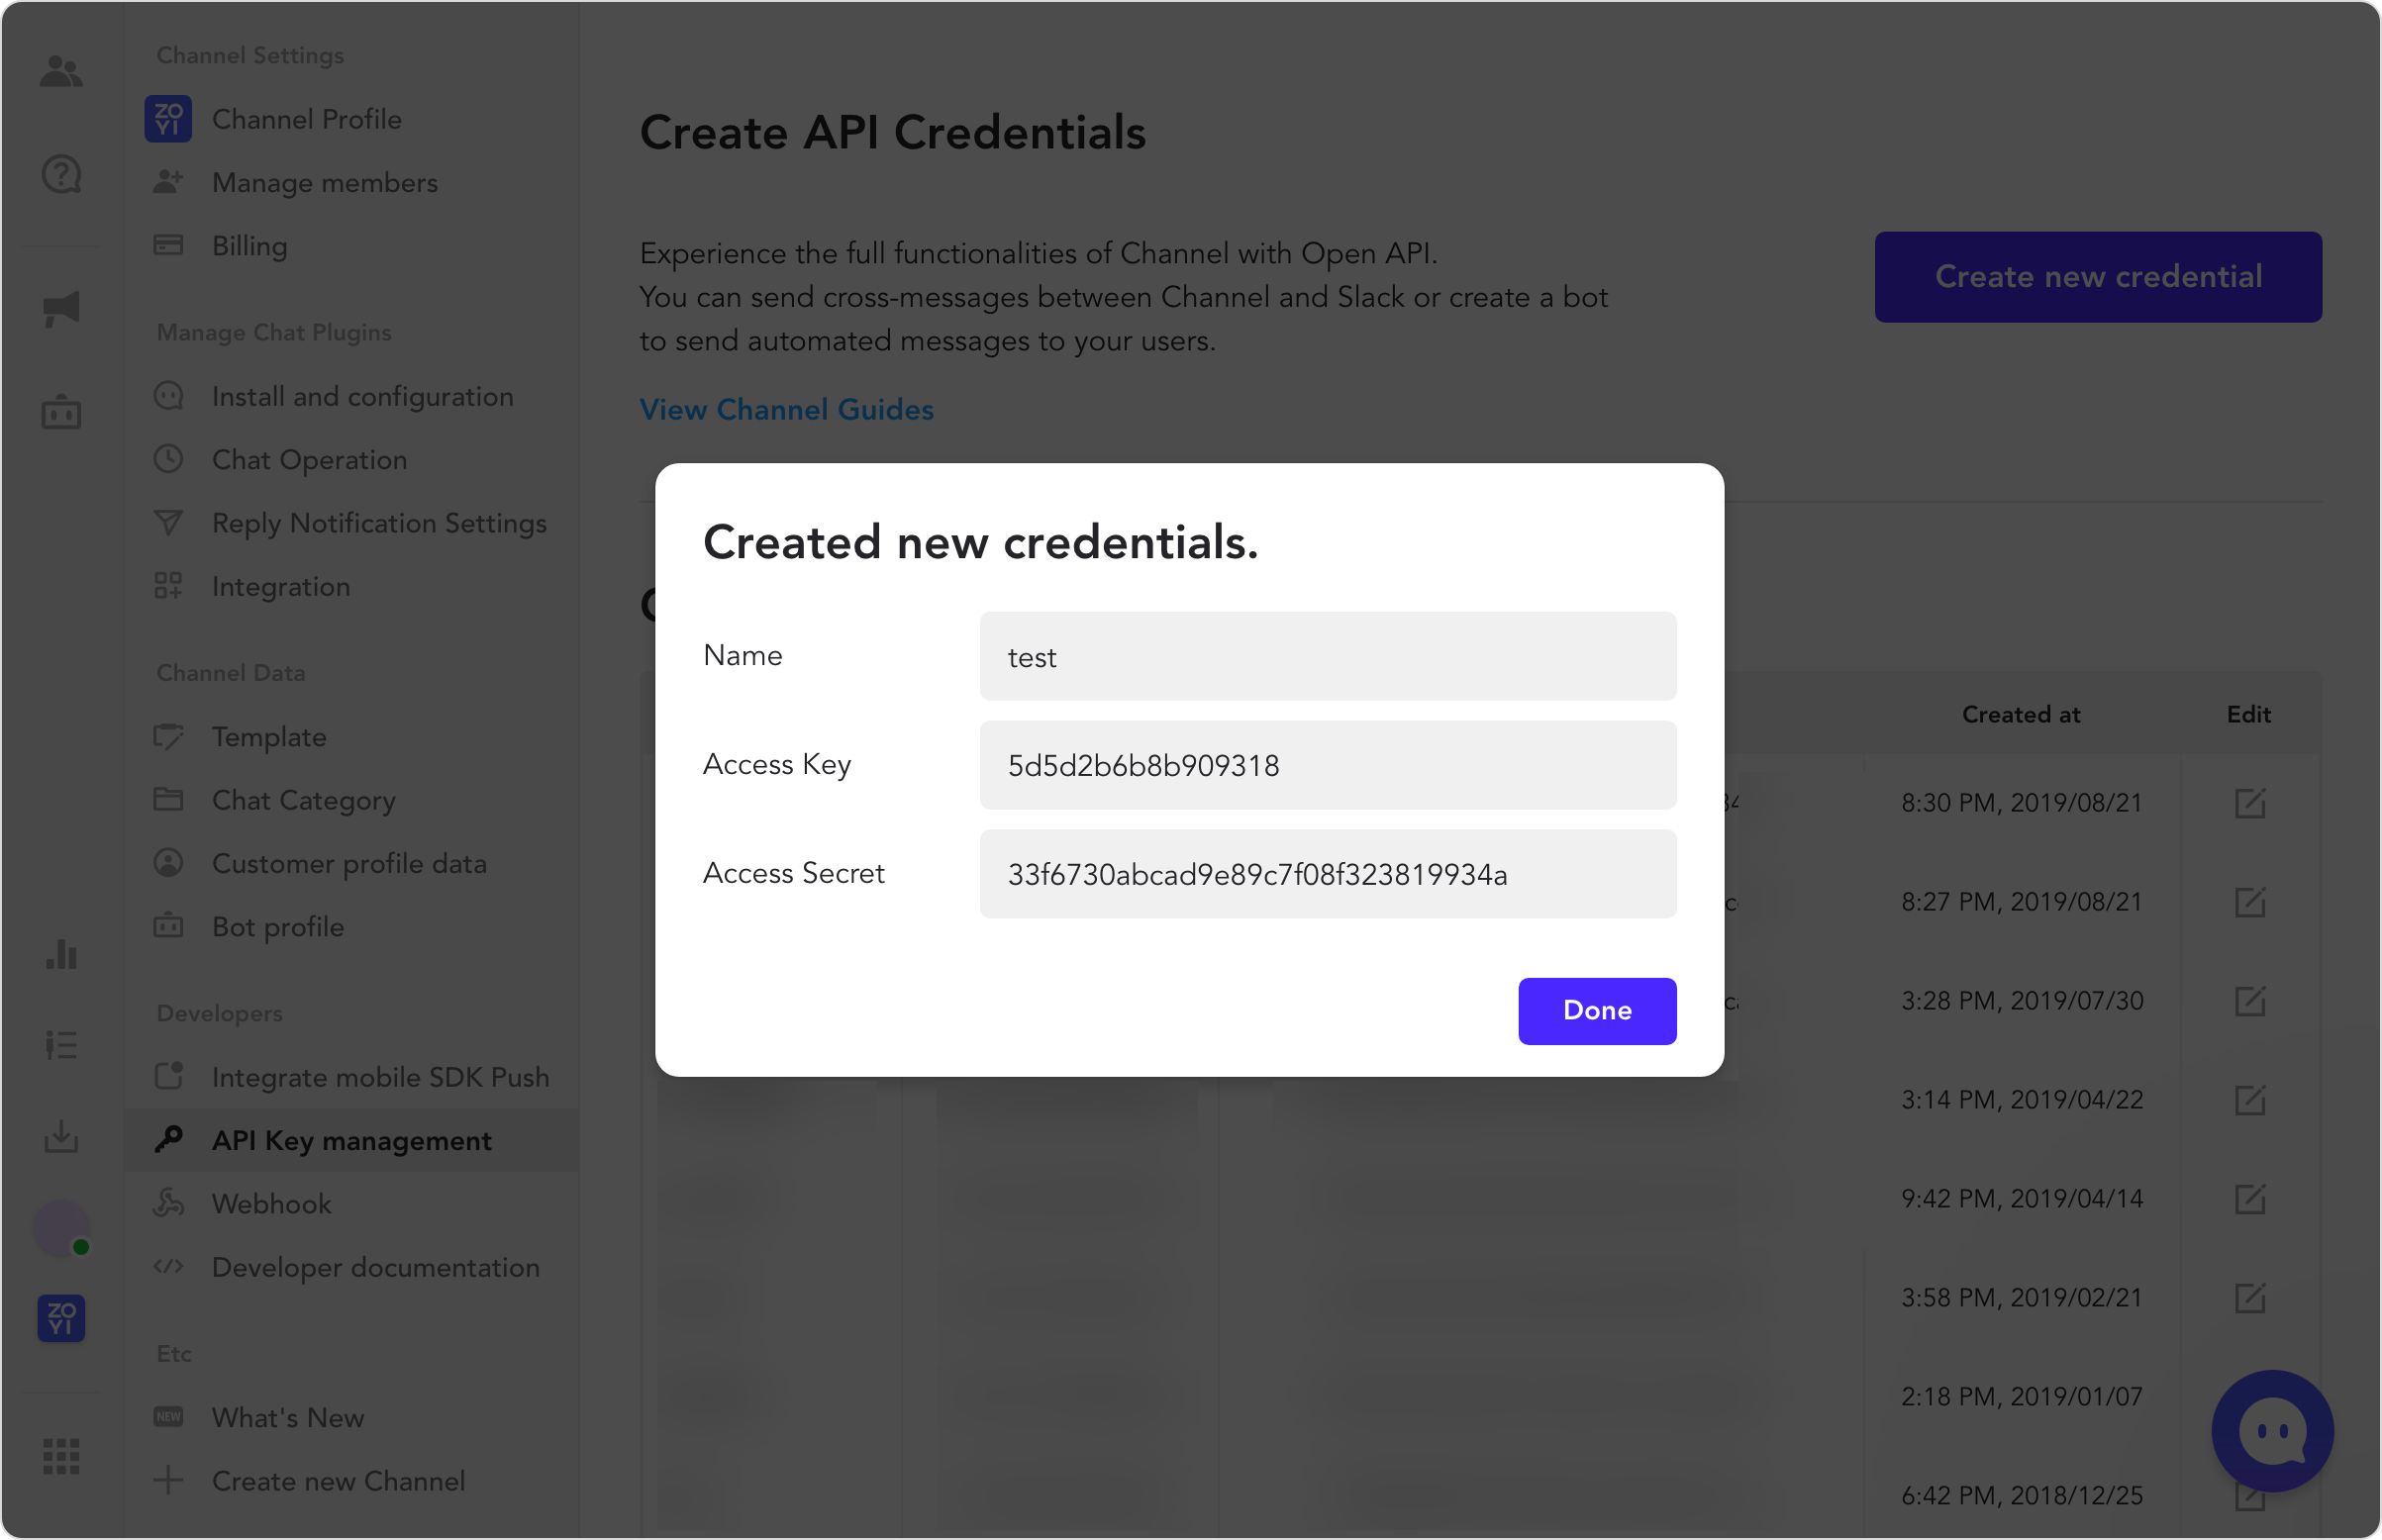 After successfully creating the credentials